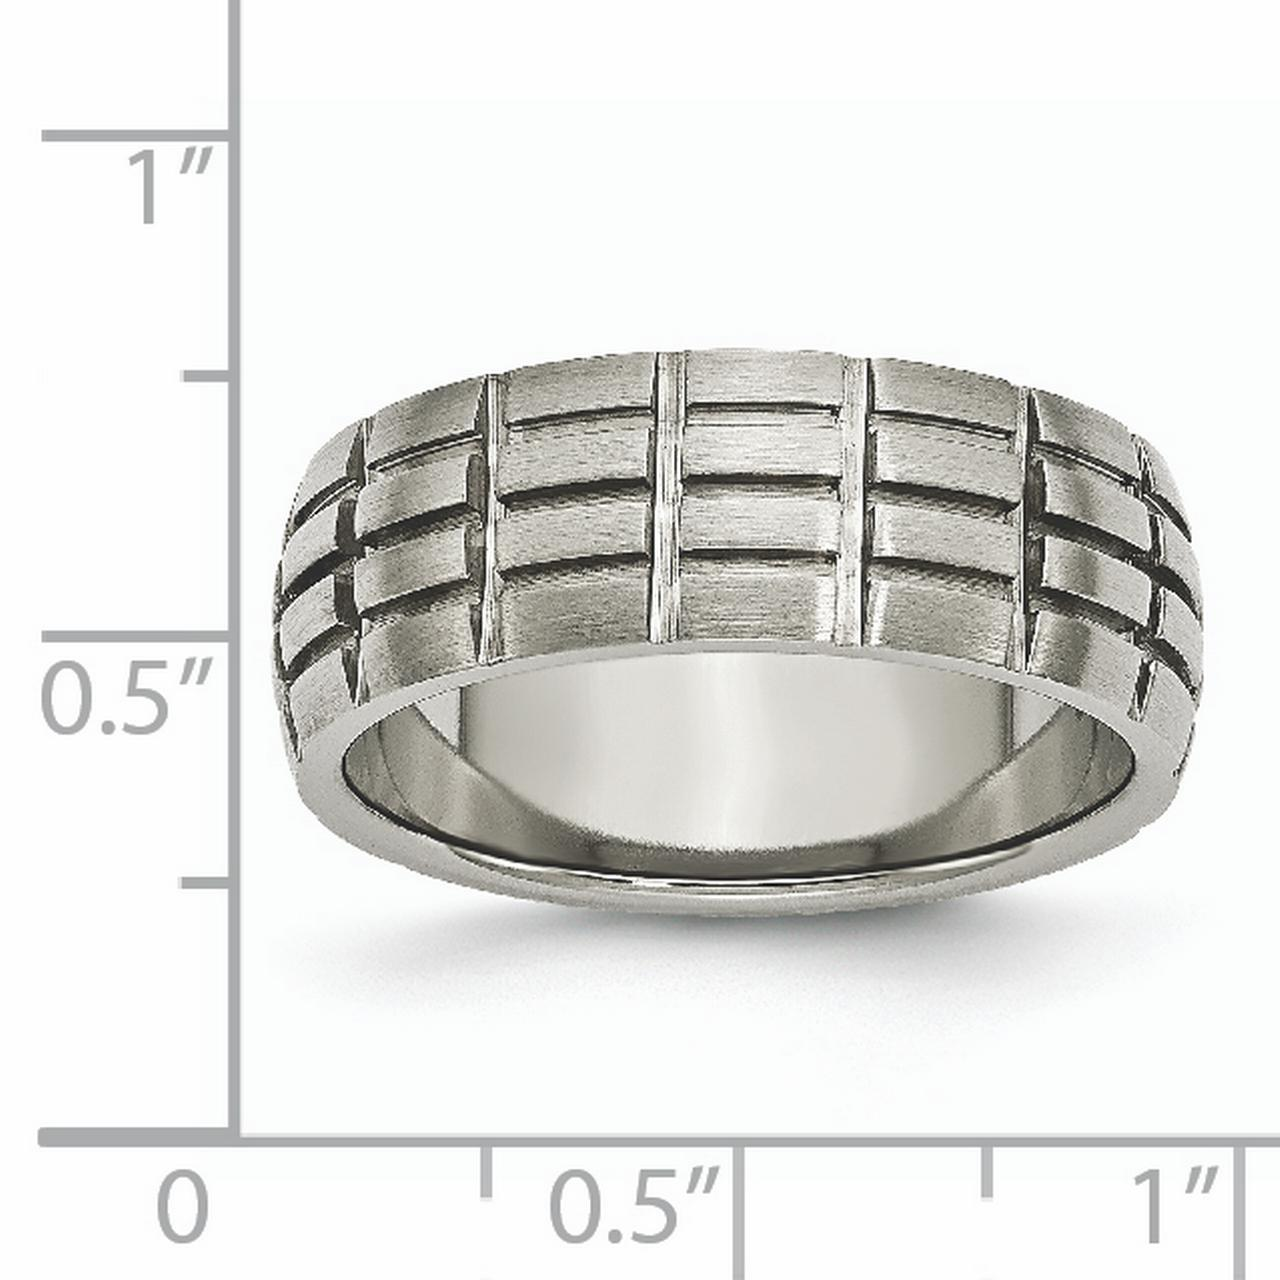 Titanium Notched Grooved 8mm Wedding Ring Band Size 11.00 Fashion Jewelry Gifts For Women For Her - image 5 of 6